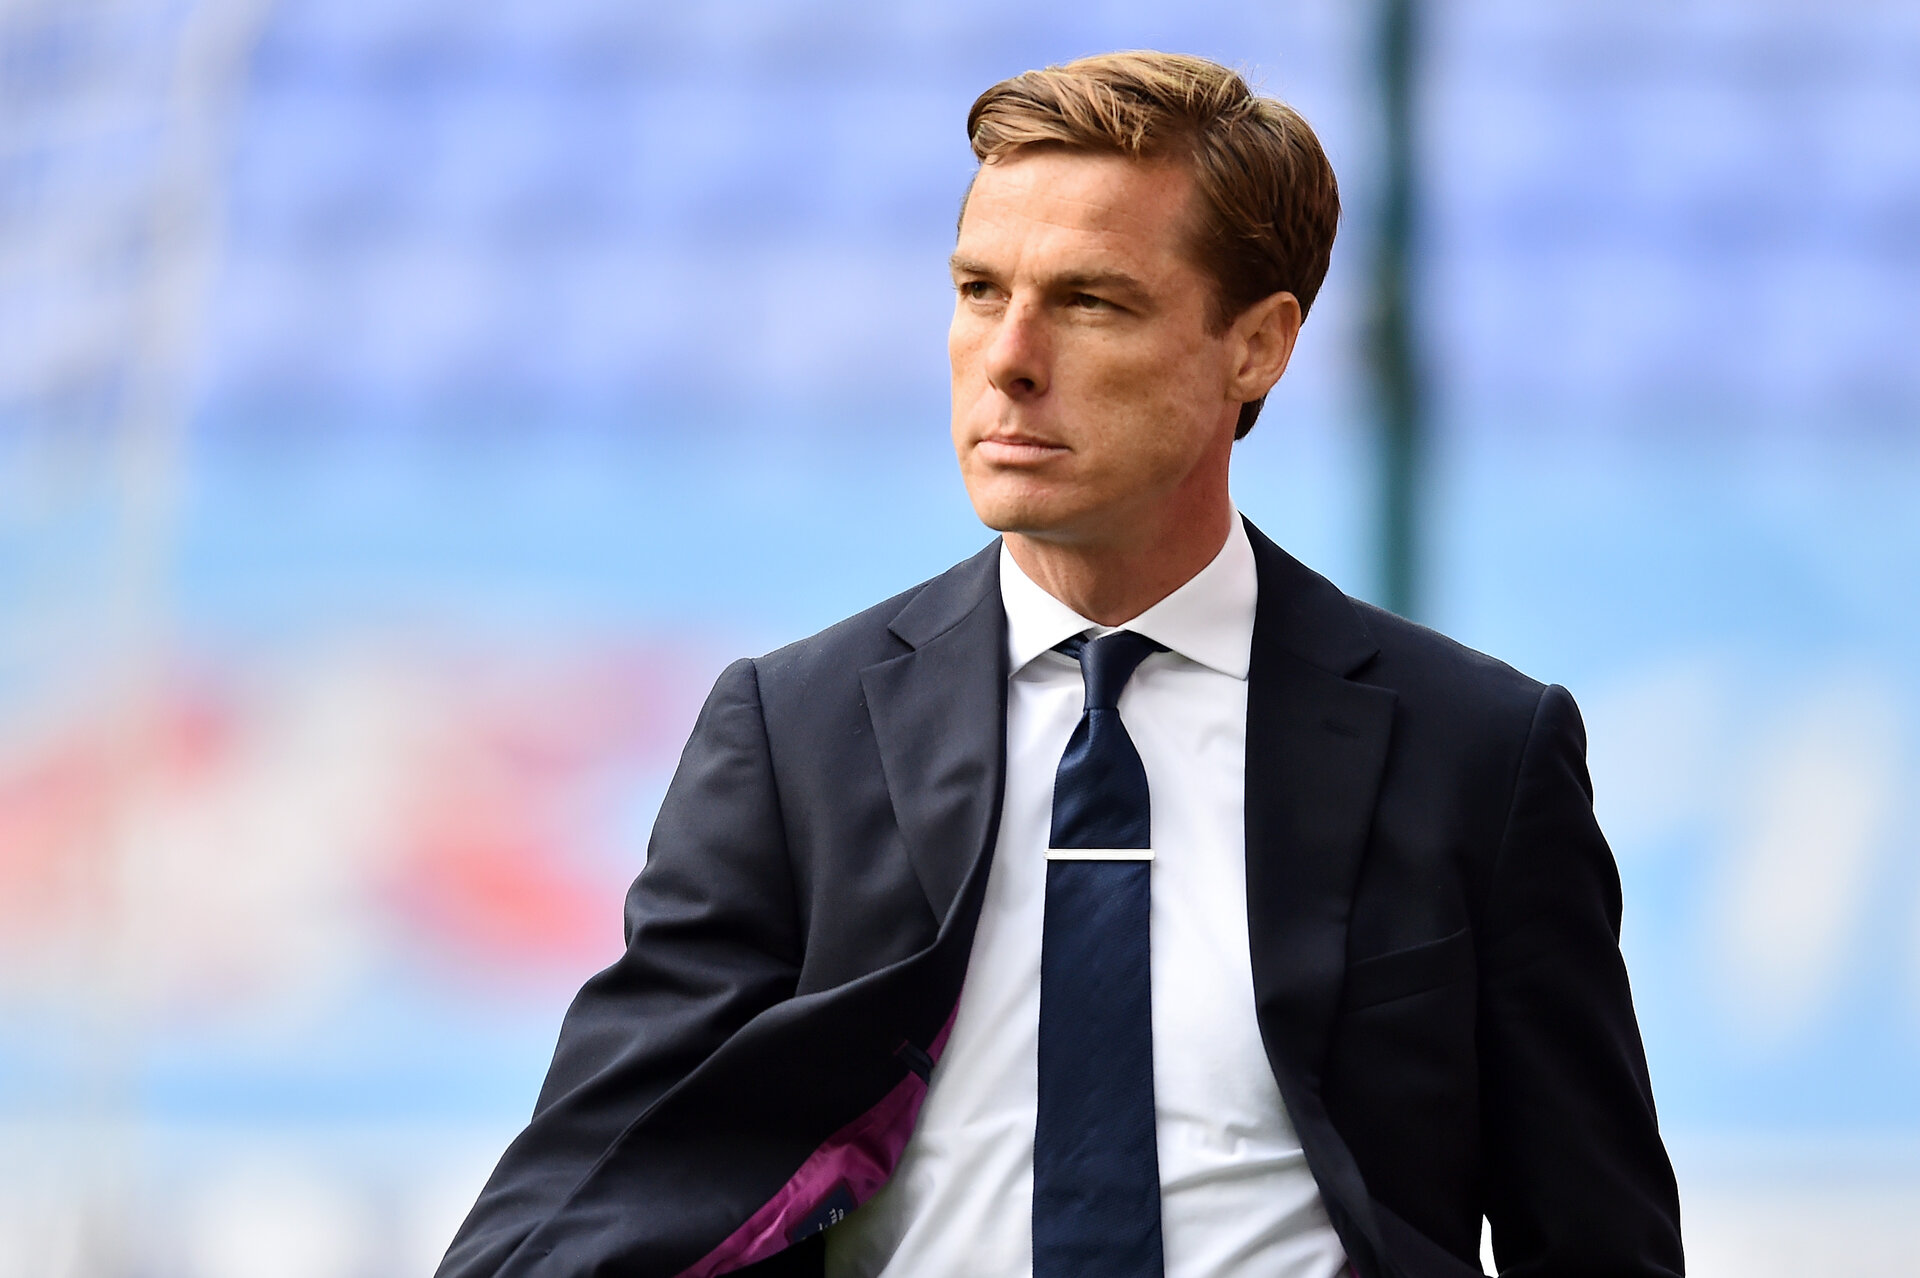 WIGAN, ENGLAND - JULY 22: Scott Parker, Manager of Fulham is seen prior the Sky Bet Championship match between Wigan Athletic and Fulham at DW Stadium on July 22, 2020 in Wigan, England. Football Stadiums around Europe remain empty due to the Coronavirus Pandemic as Government social distancing laws prohibit fans inside venues resulting in all fixtures being played behind closed doors. (Photo by Nathan Stirk/Getty Images)